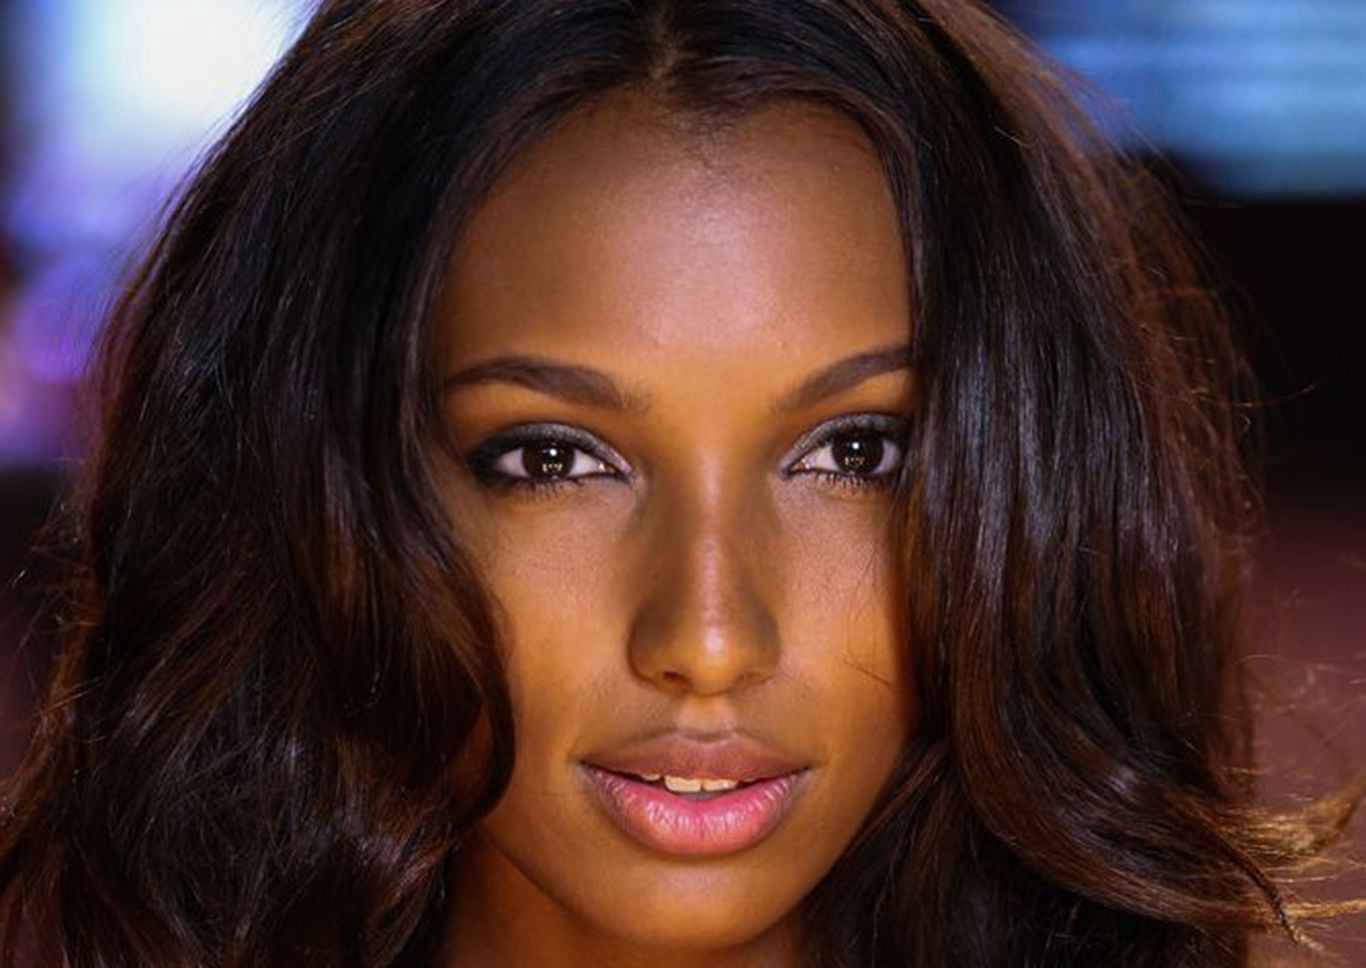 Jasmine Tookes face High Resolution wallpaper